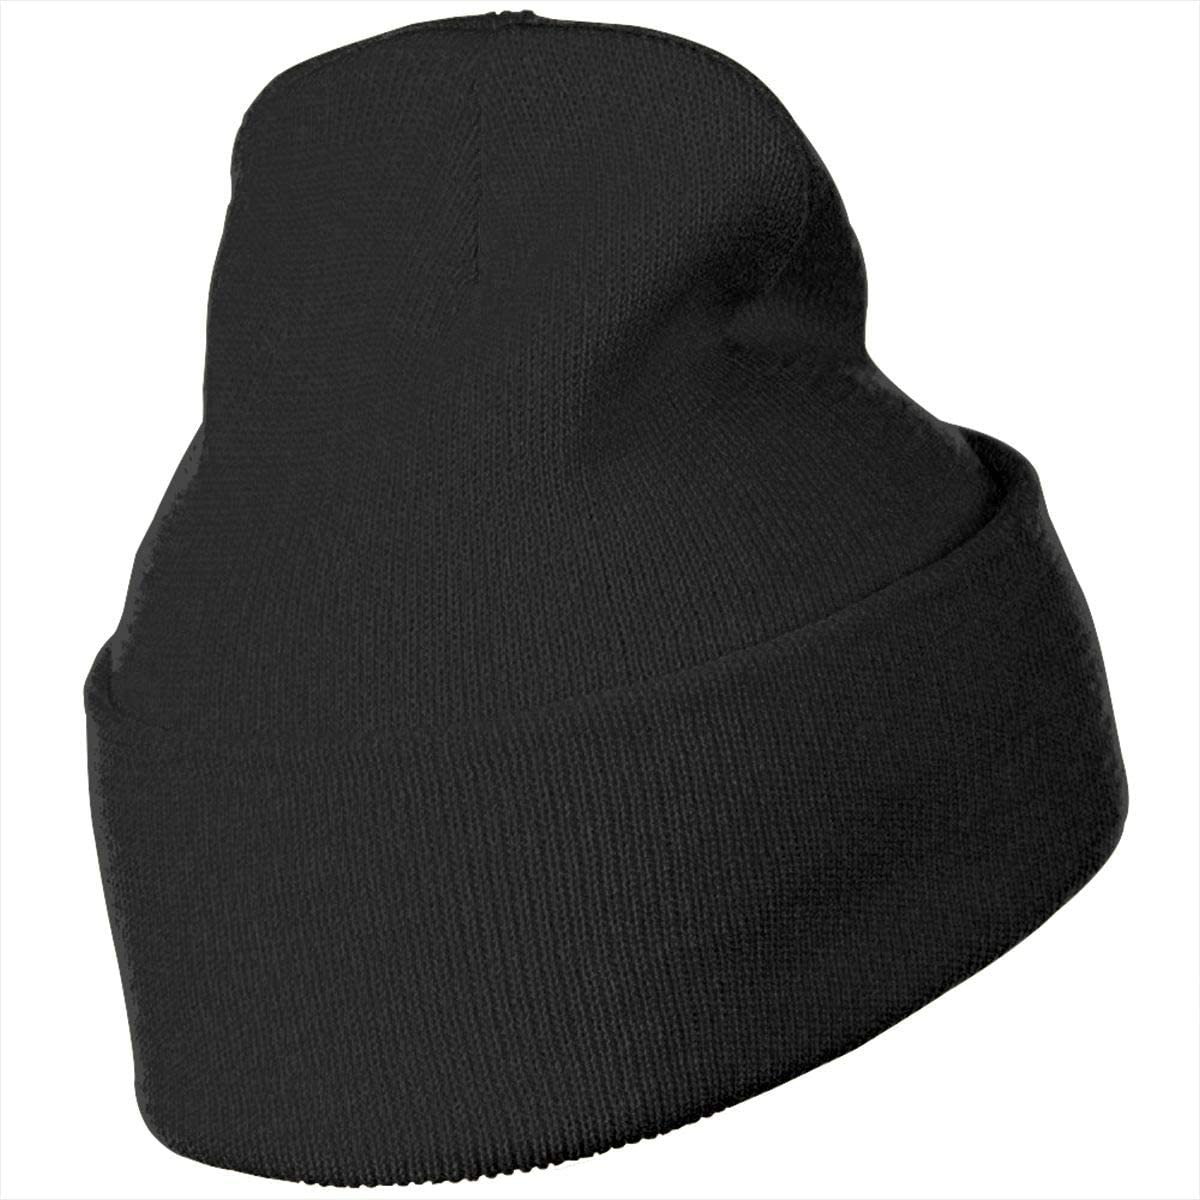 COLLJL-8 Unisex Down Syndrome Awareness Trisomy Outdoor Fashion Knit Beanies Hat Soft Winter Skull Caps